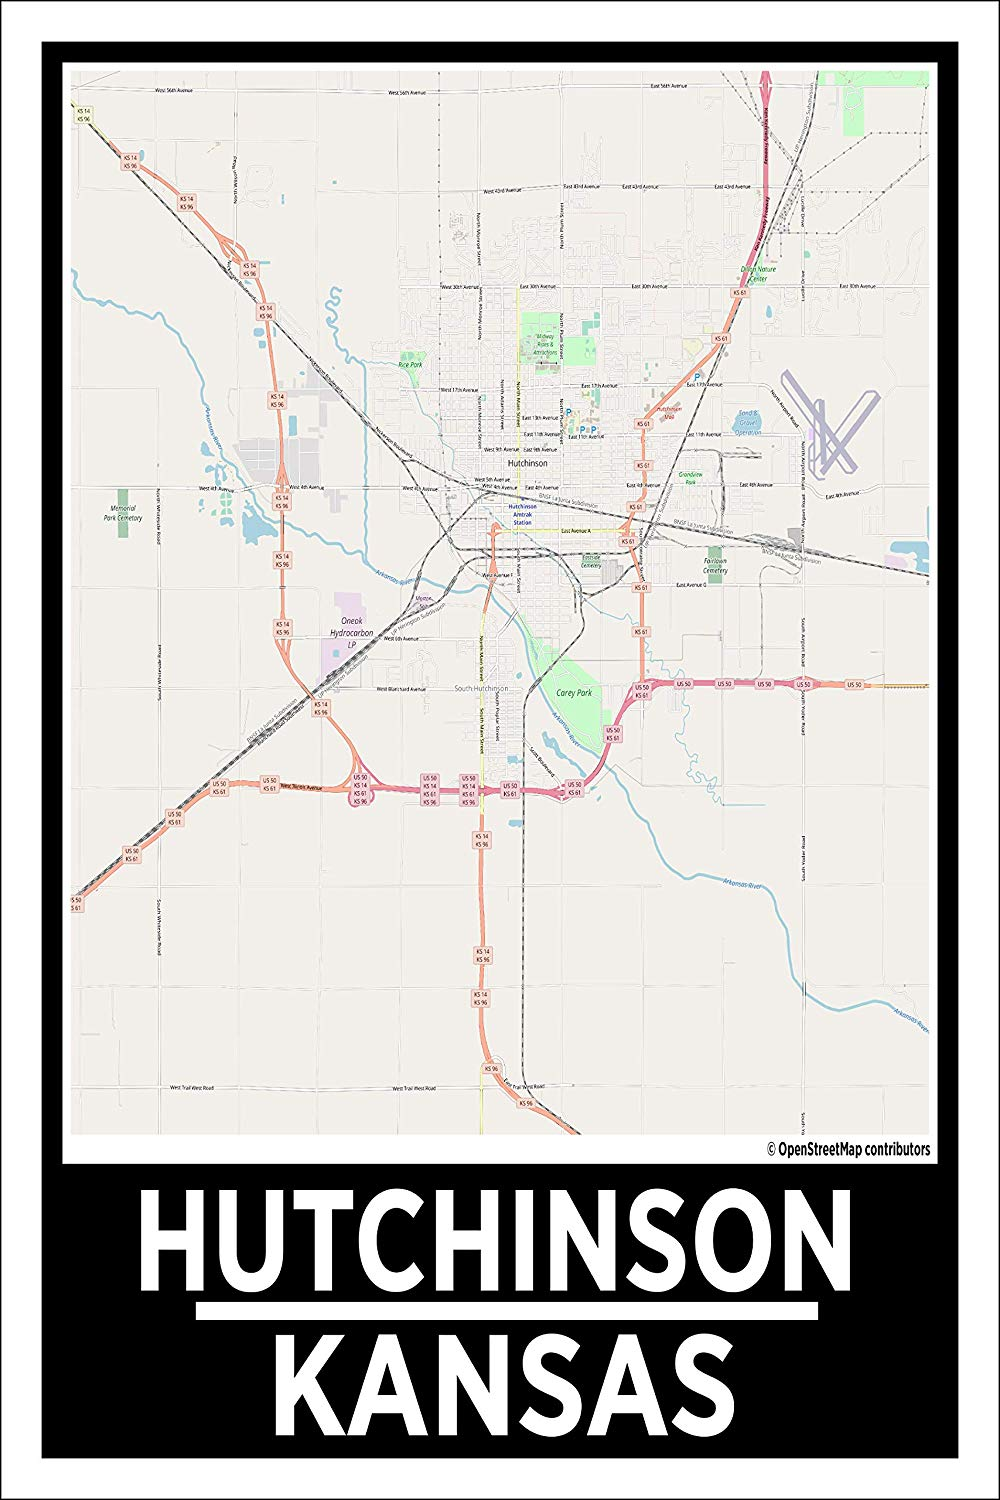 "Spitzy's Hutchinson Kansas Map Poster - Home Wall Art for Your Bedroom or Home Office - Map of Hutchinson, City Map Poster (12"" x 18"" Dimensions Include a White .5"" Border)"